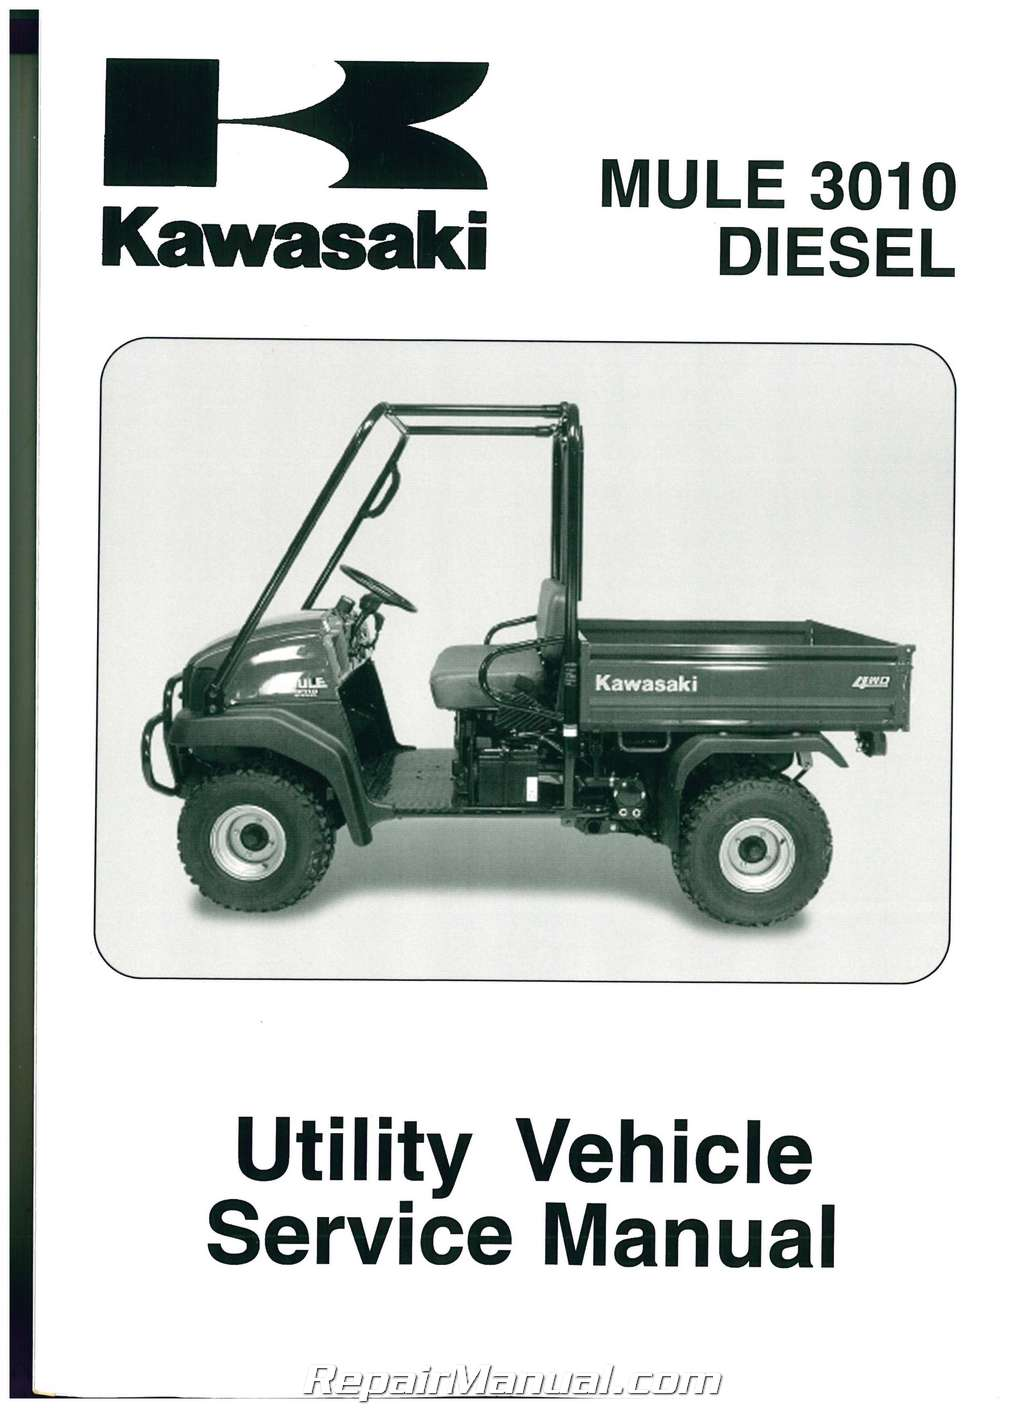 2003 2007 kawasaki kaf950 mule 3010 diesel side by side service manual rh  repairmanual com kawasaki mule 610 shop manual kawasaki mule 3010 shop  manual